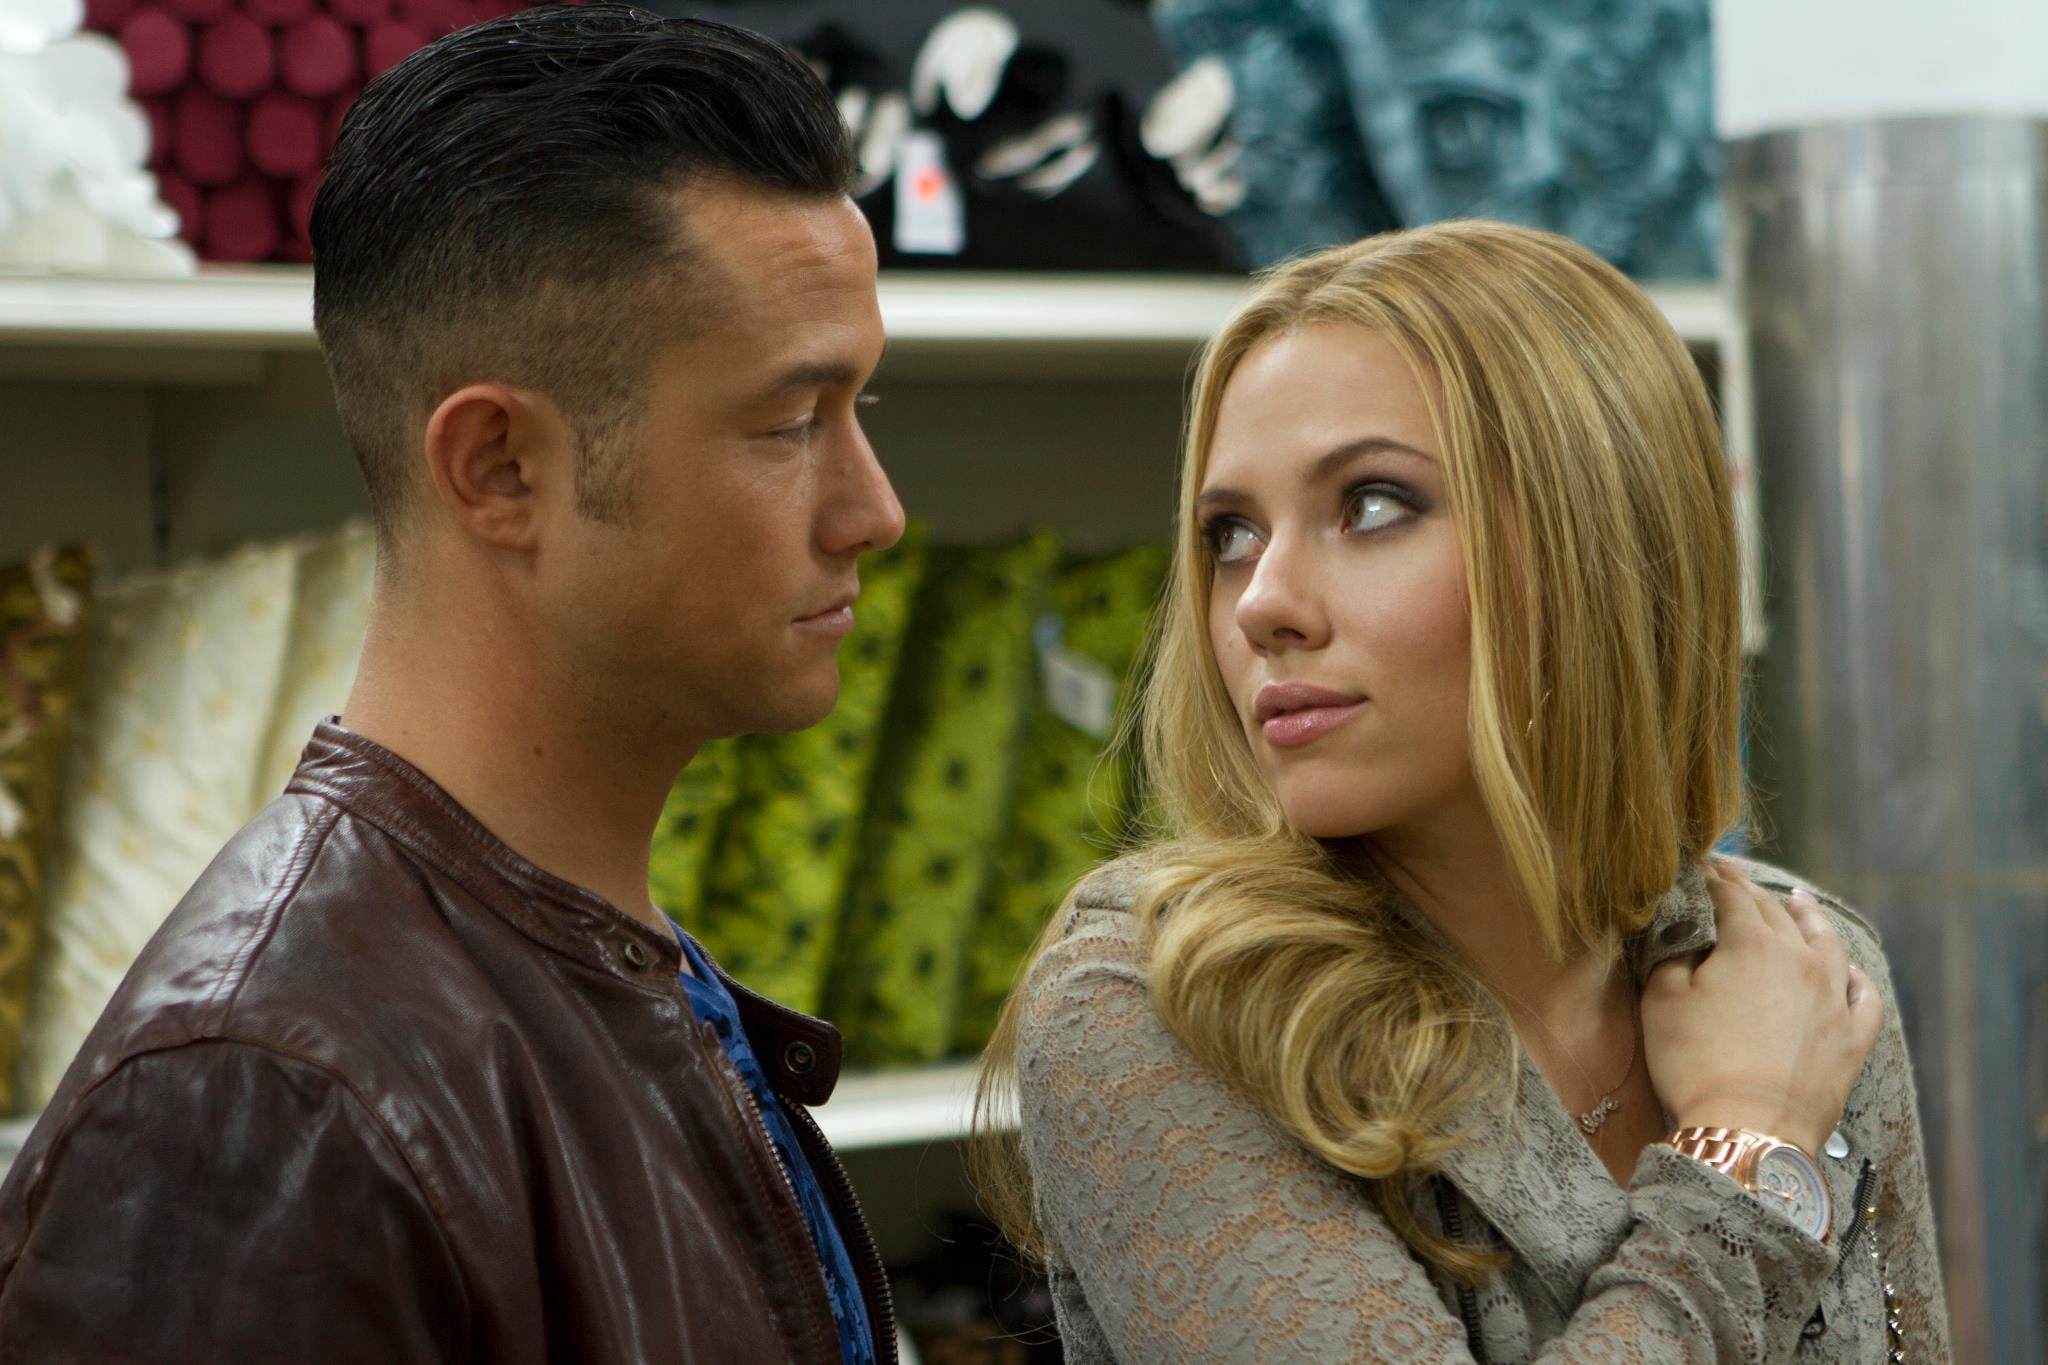 Don Jon  What it's about: New Jersey-bred Don Jon (Joseph Gordon-Levitt) romances Barbara (Scarlett Johansson) while dealing with his addiction to porn.  Why we're interested: Gordon-Levitt stars in, wrote, and directed this movie, and not only are we big fans of his, but we're also curious about his talents behind the camera. Plus, he and Johansson look like they have good chemistry — and fun as their thickly accented characters.  When it opens: Sept. 27 Watch the trailer for Don Jon.  Source: Relativity Media